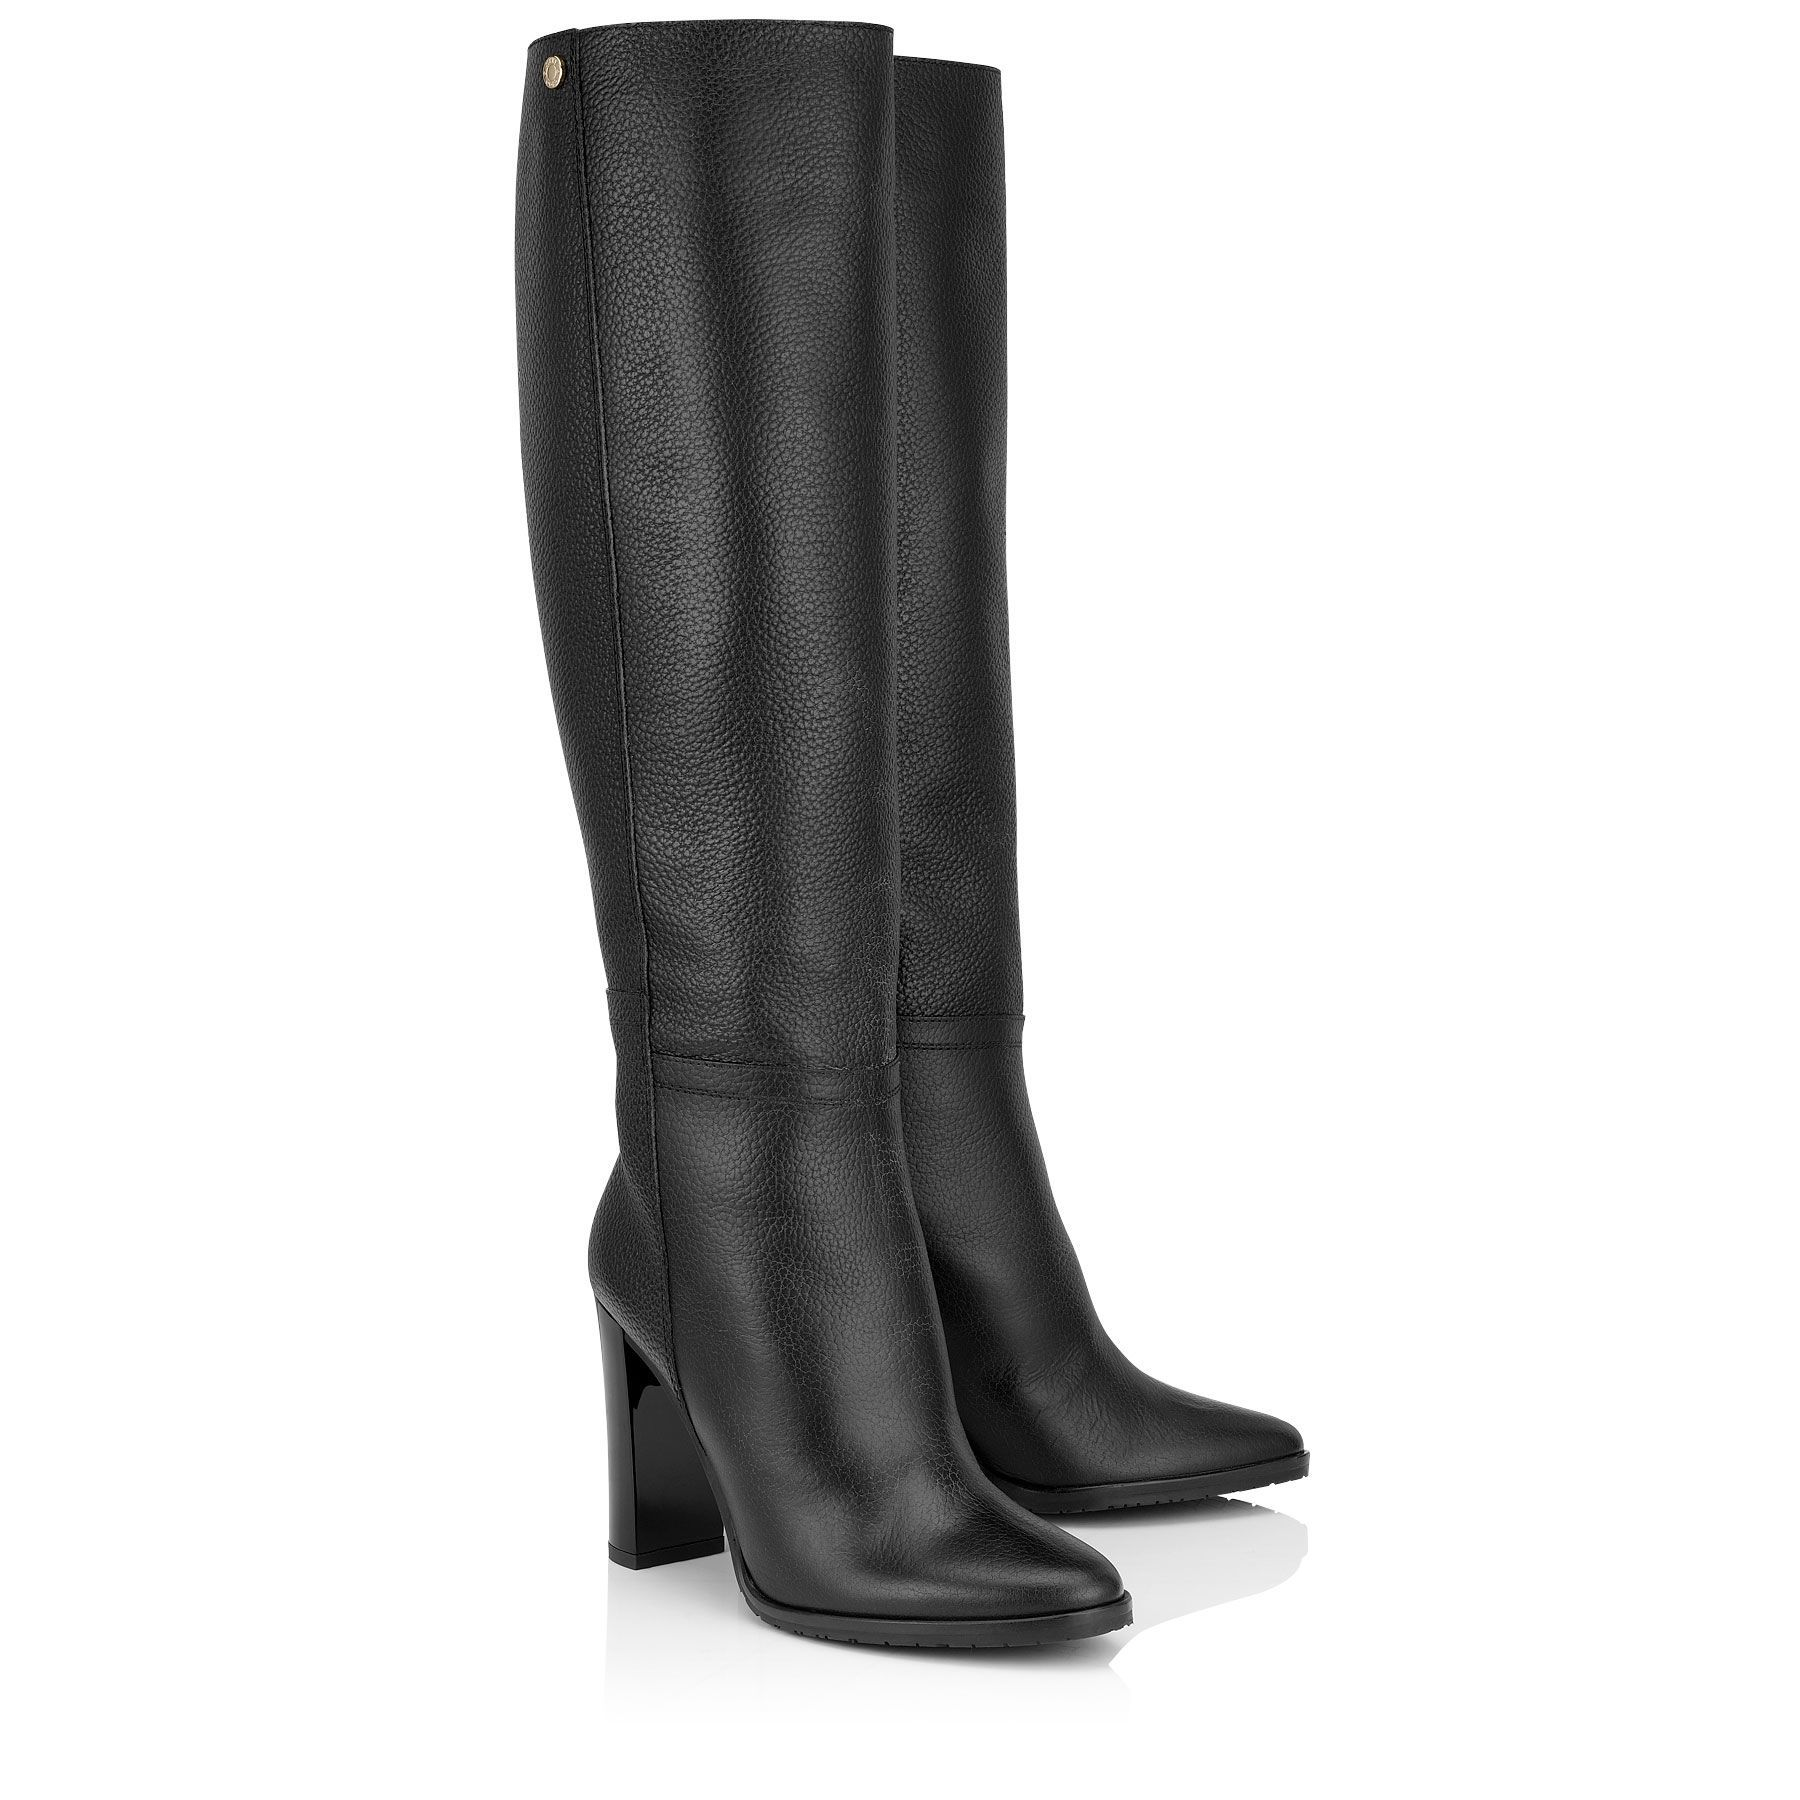 5fbb65d798fc Black Embossed Grainy Leather Knee High Boots